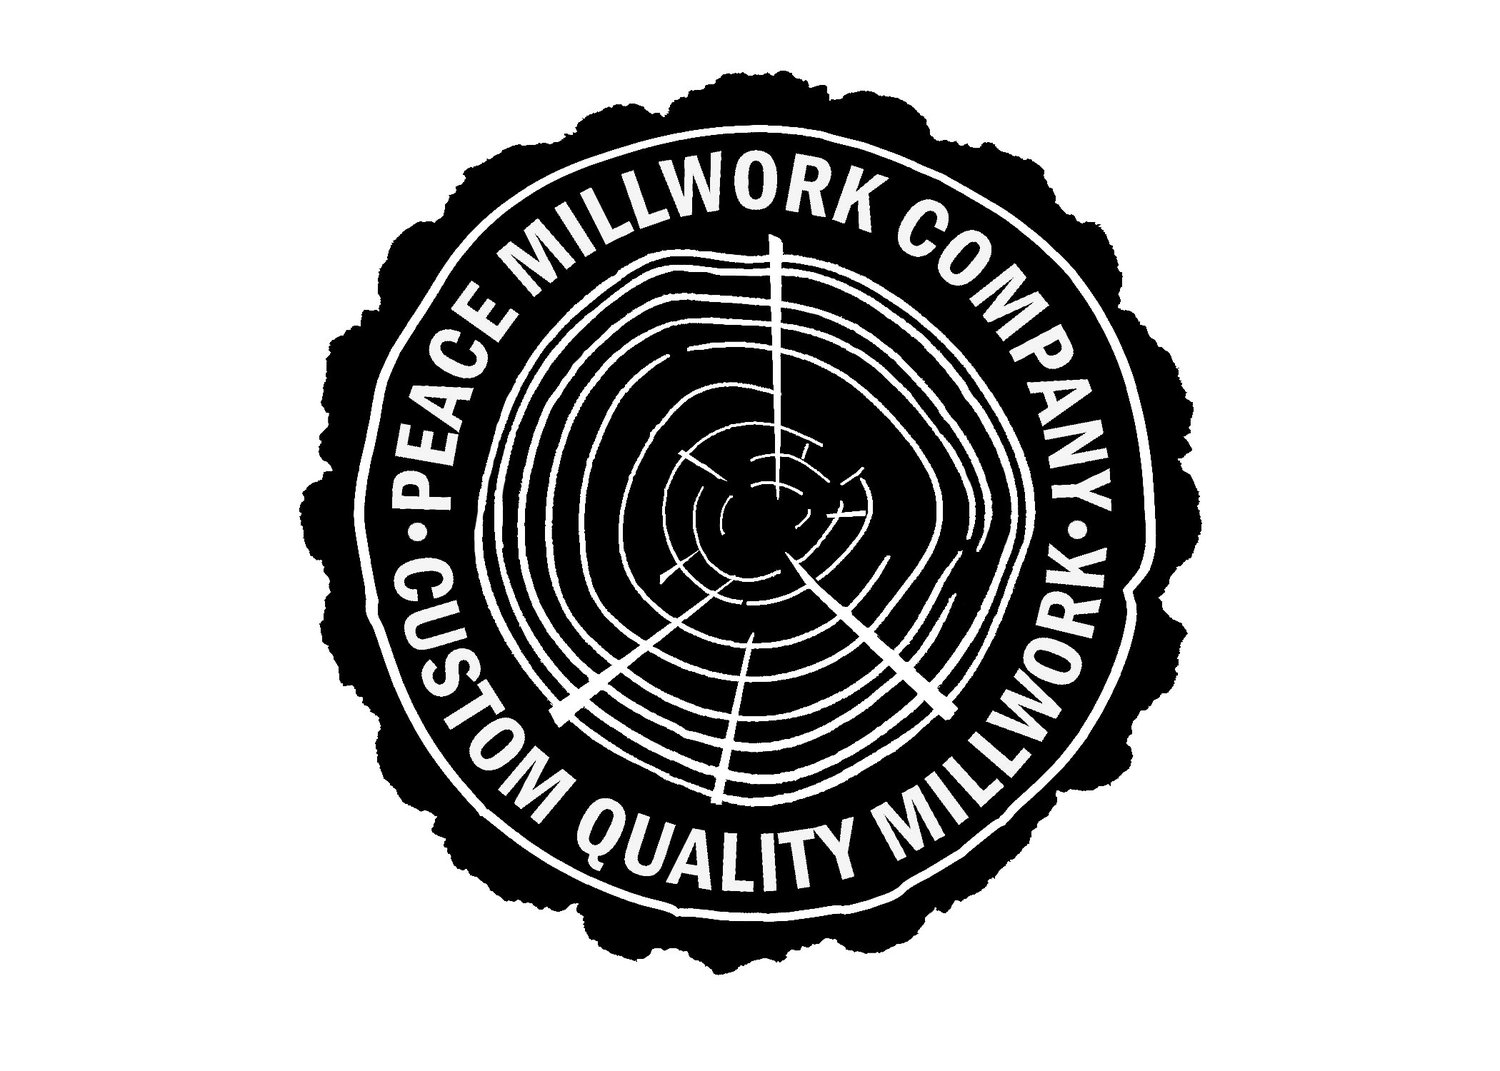 PEACE MILLWORK CO INC